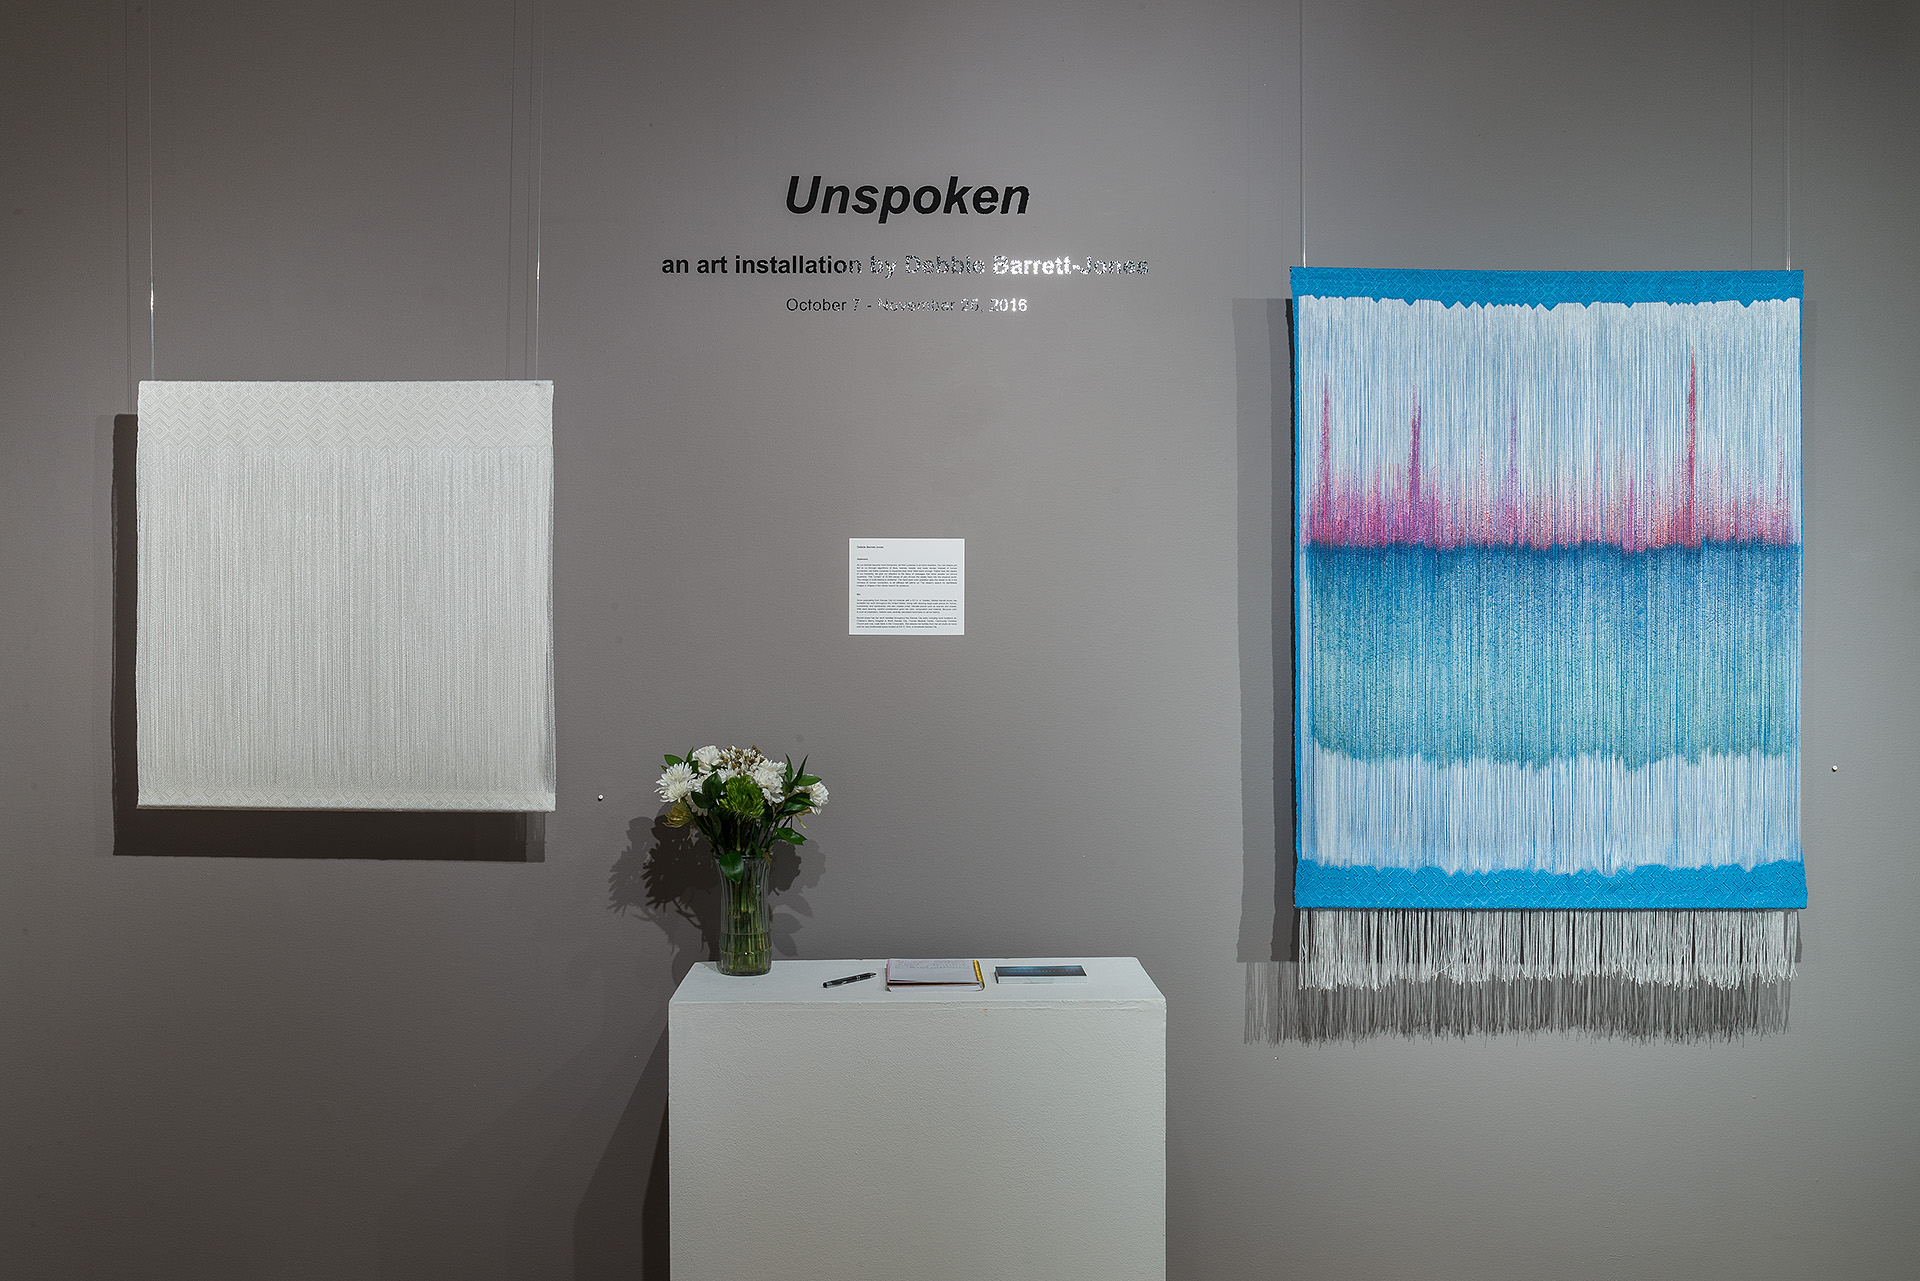 Unspoken; an art installation by Debbie Barrett-Jones   Leedy-Voulkos Art Center   Kansas City, MO